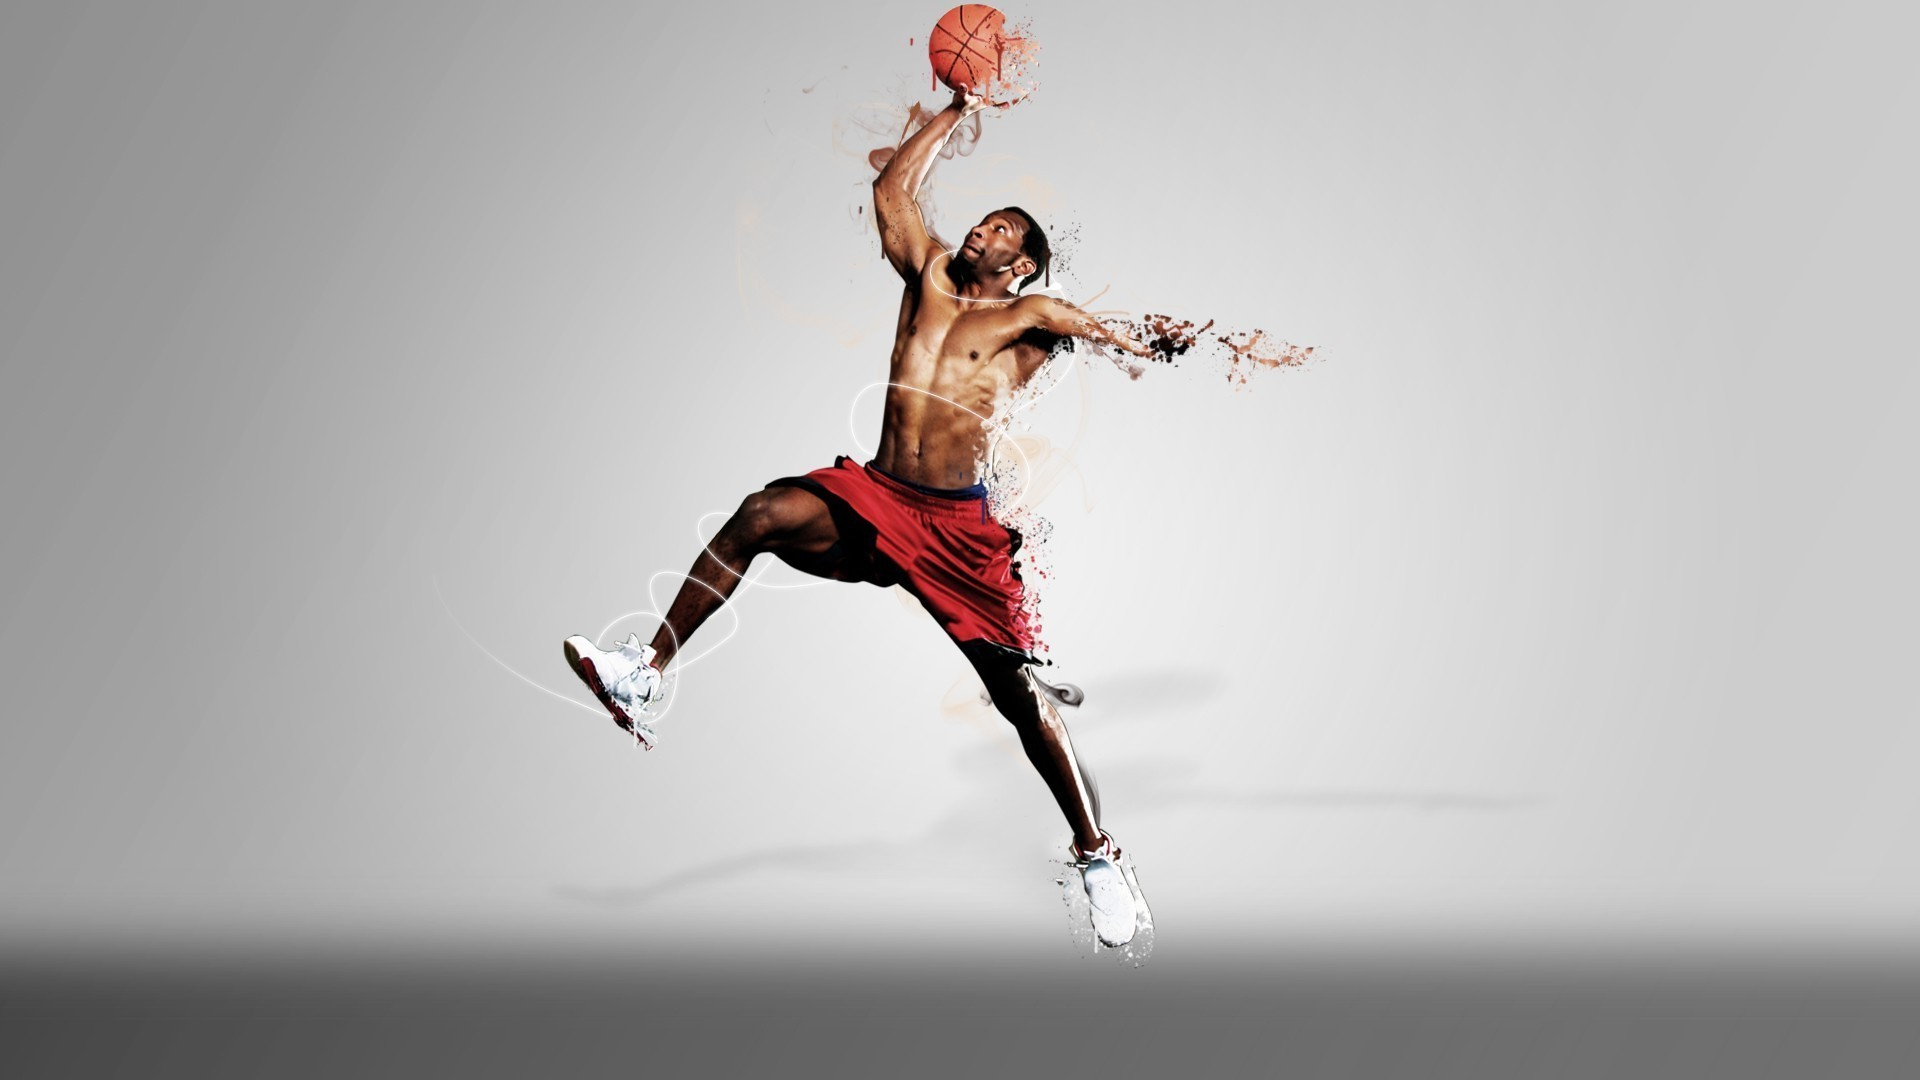 1080px350 Dope Basketball Wallpaper: Cool Basketball Wallpapers HD (61+ Images